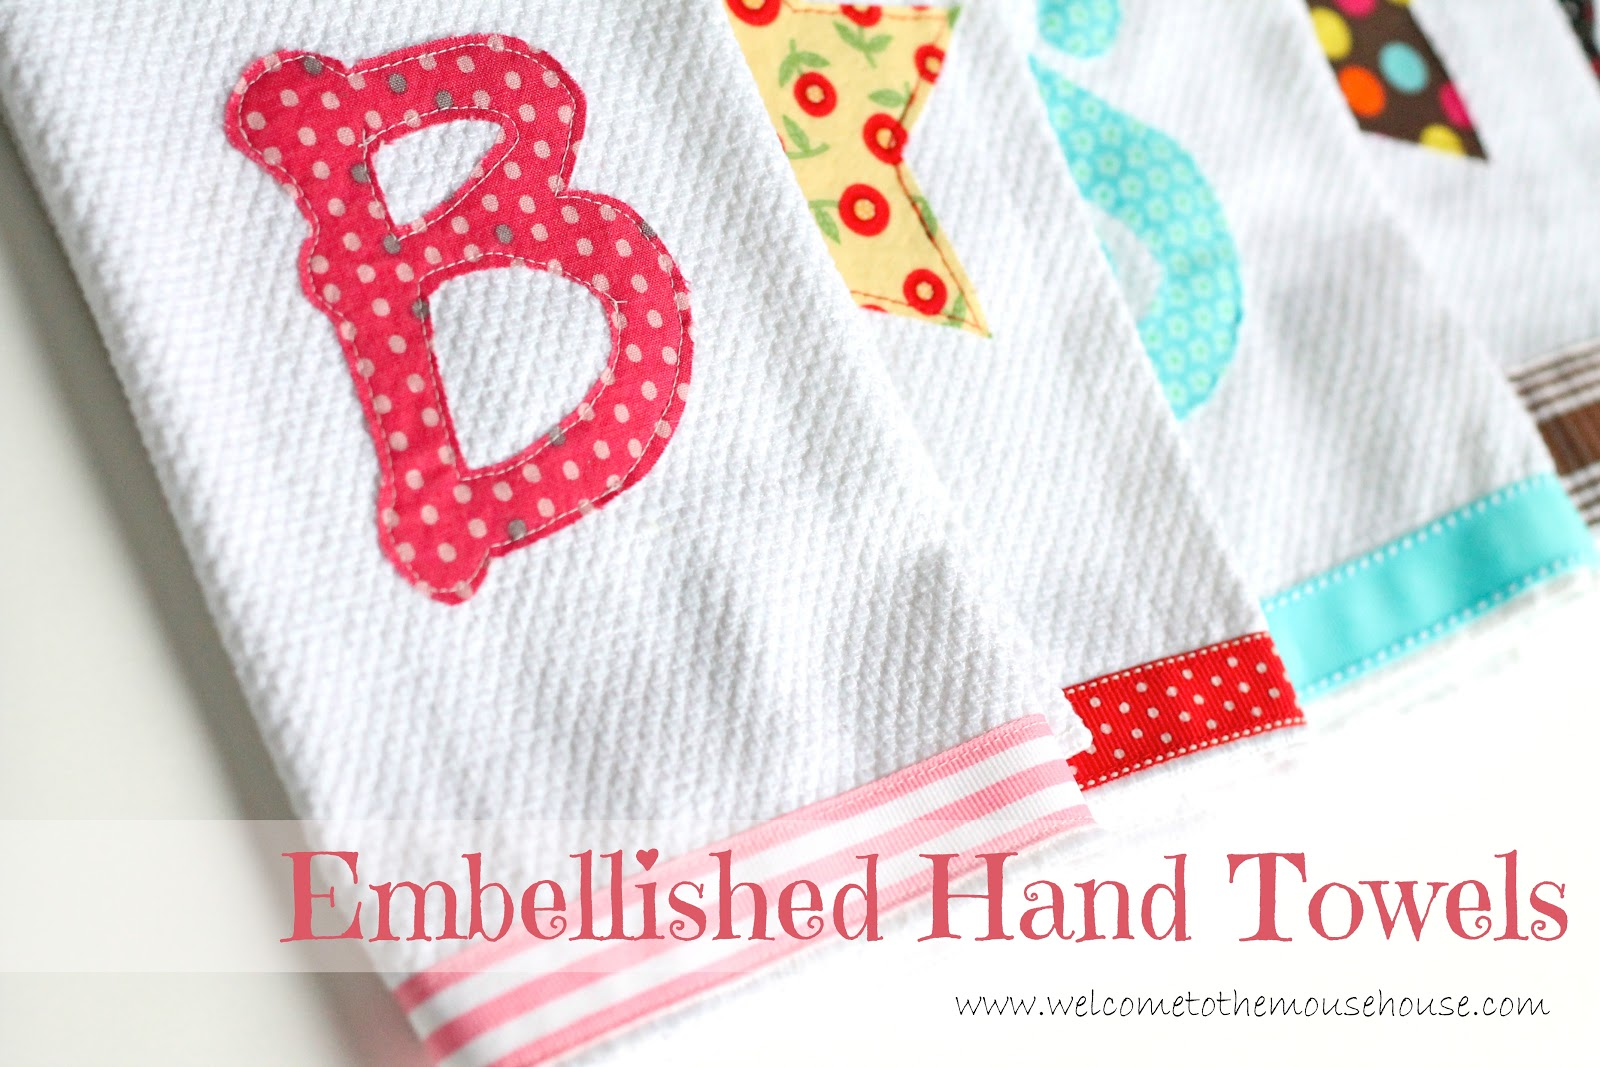 How to Embellish Hand Towels: DIY - welcometothemousehouse.com